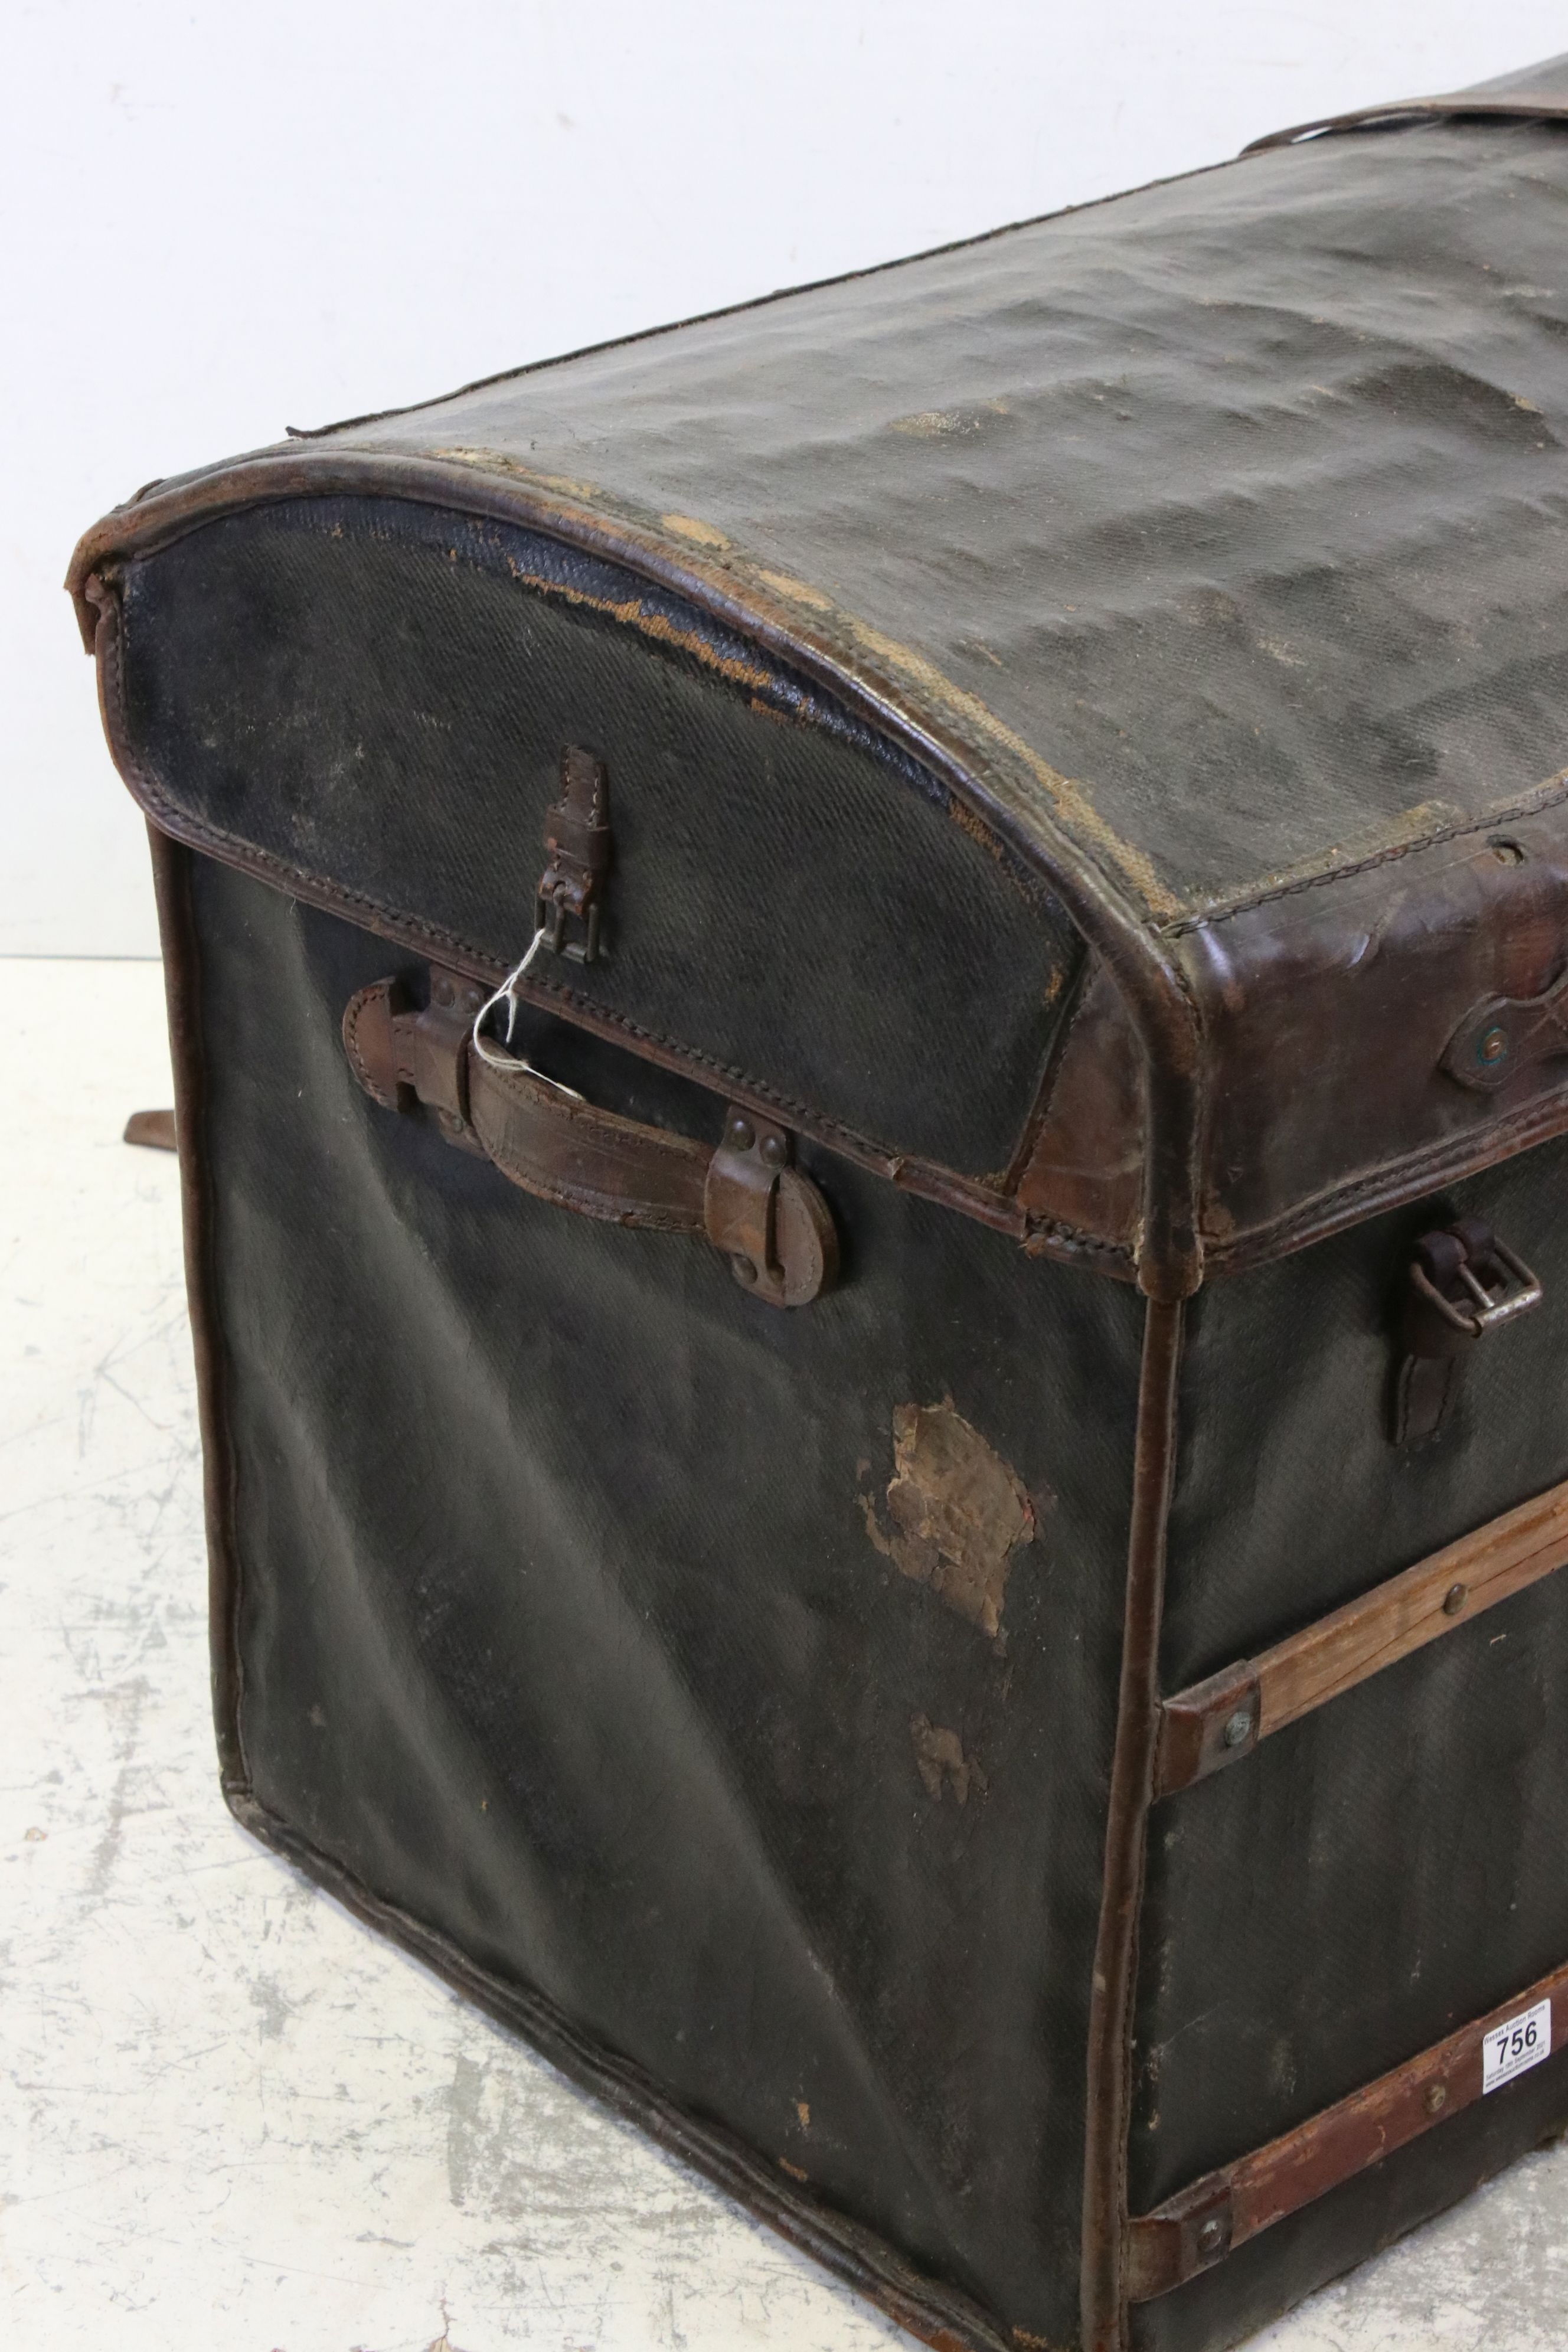 19th century Domed Top Wicker Leather Bound Travelling Trunk with Drop-in Tray, 82cms long x 66cms - Image 5 of 7